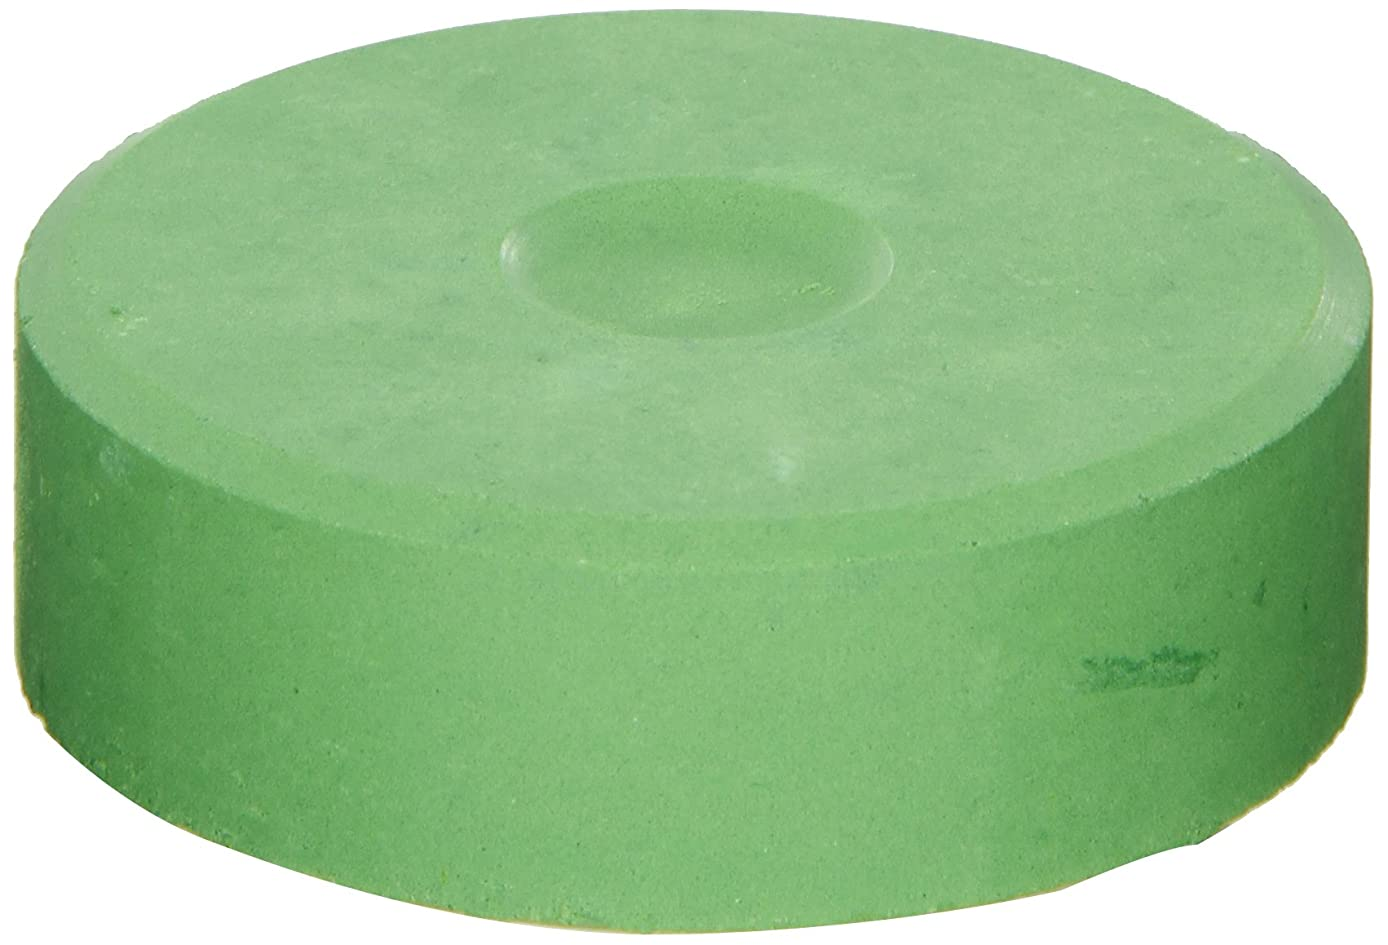 Jack Richeson Giant Tempera Cakes, 2-1/4 x 3/4 Inches, Brilliant Green, Pack of 6